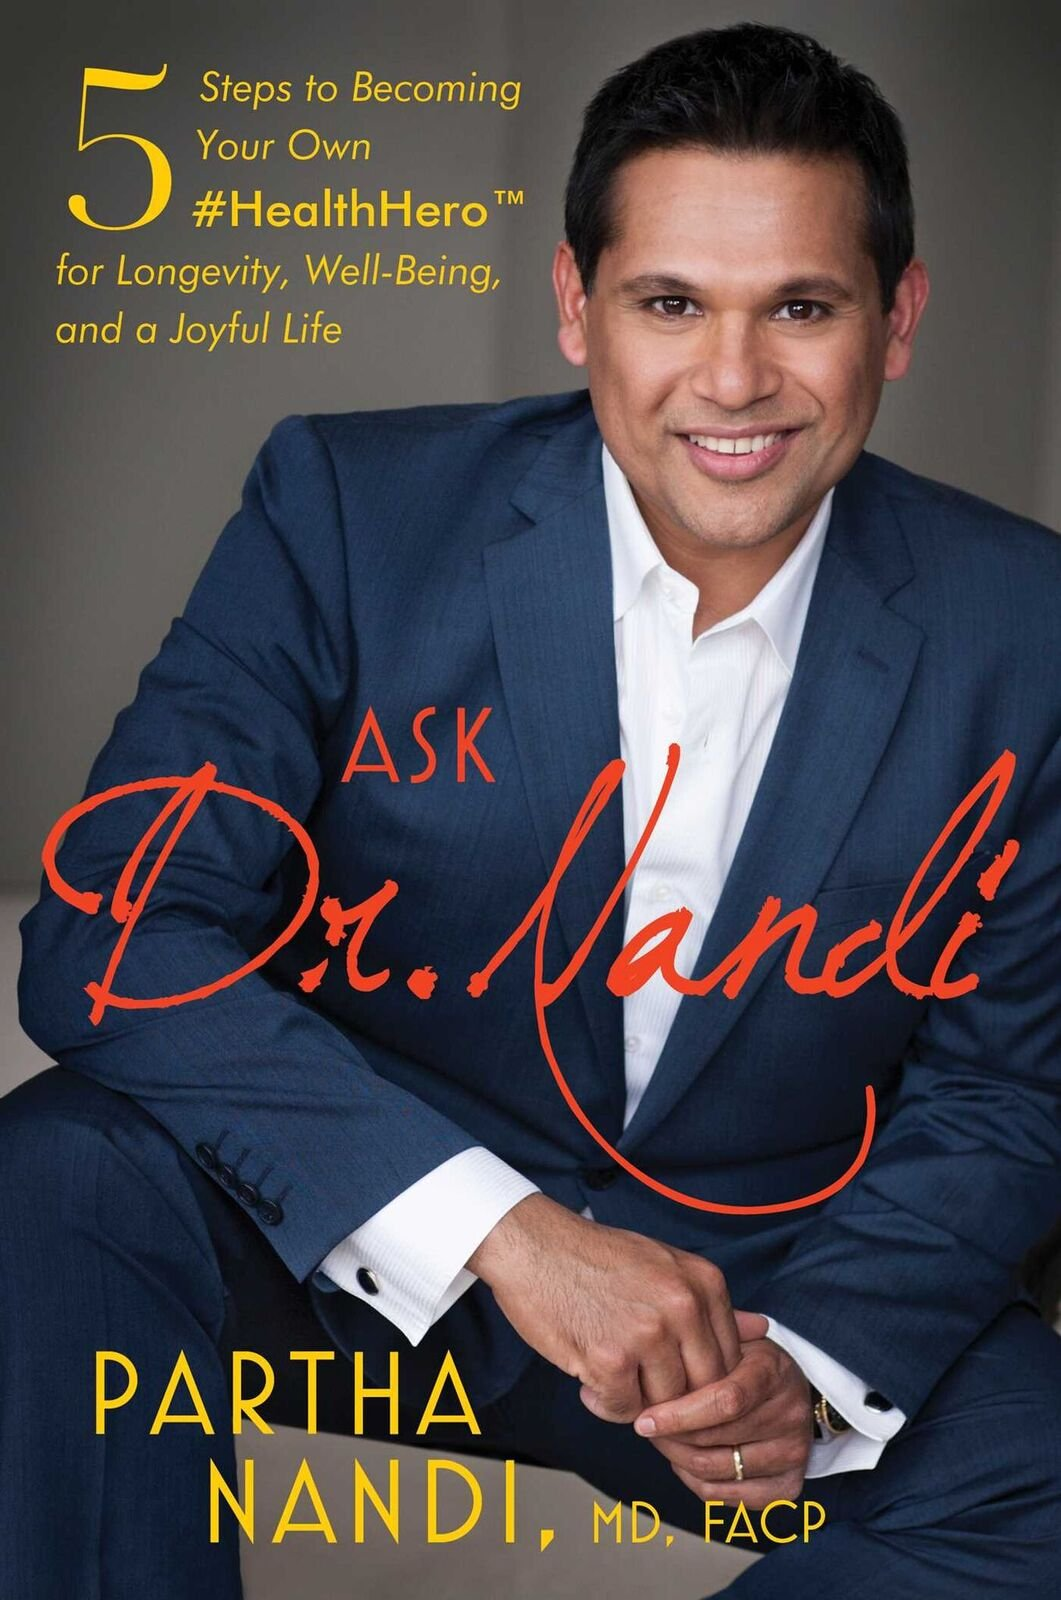 Ask Dr. Nandi: 5 Steps to Becoming Your Own HealthHero for Longevity, Well-Being and a Joyful Life